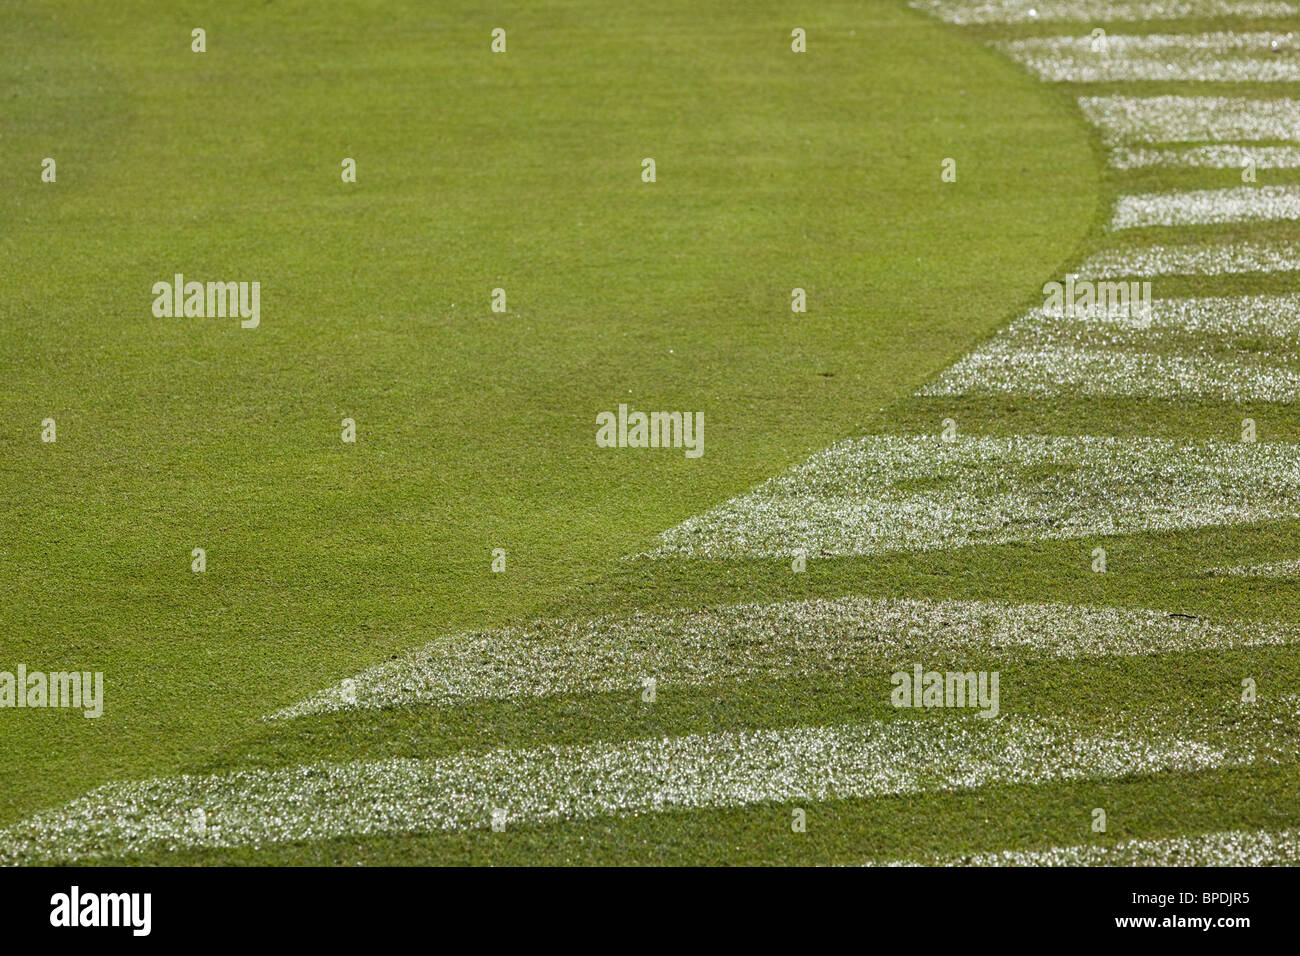 Golf green with tracks in the dew around the edge - Stock Image